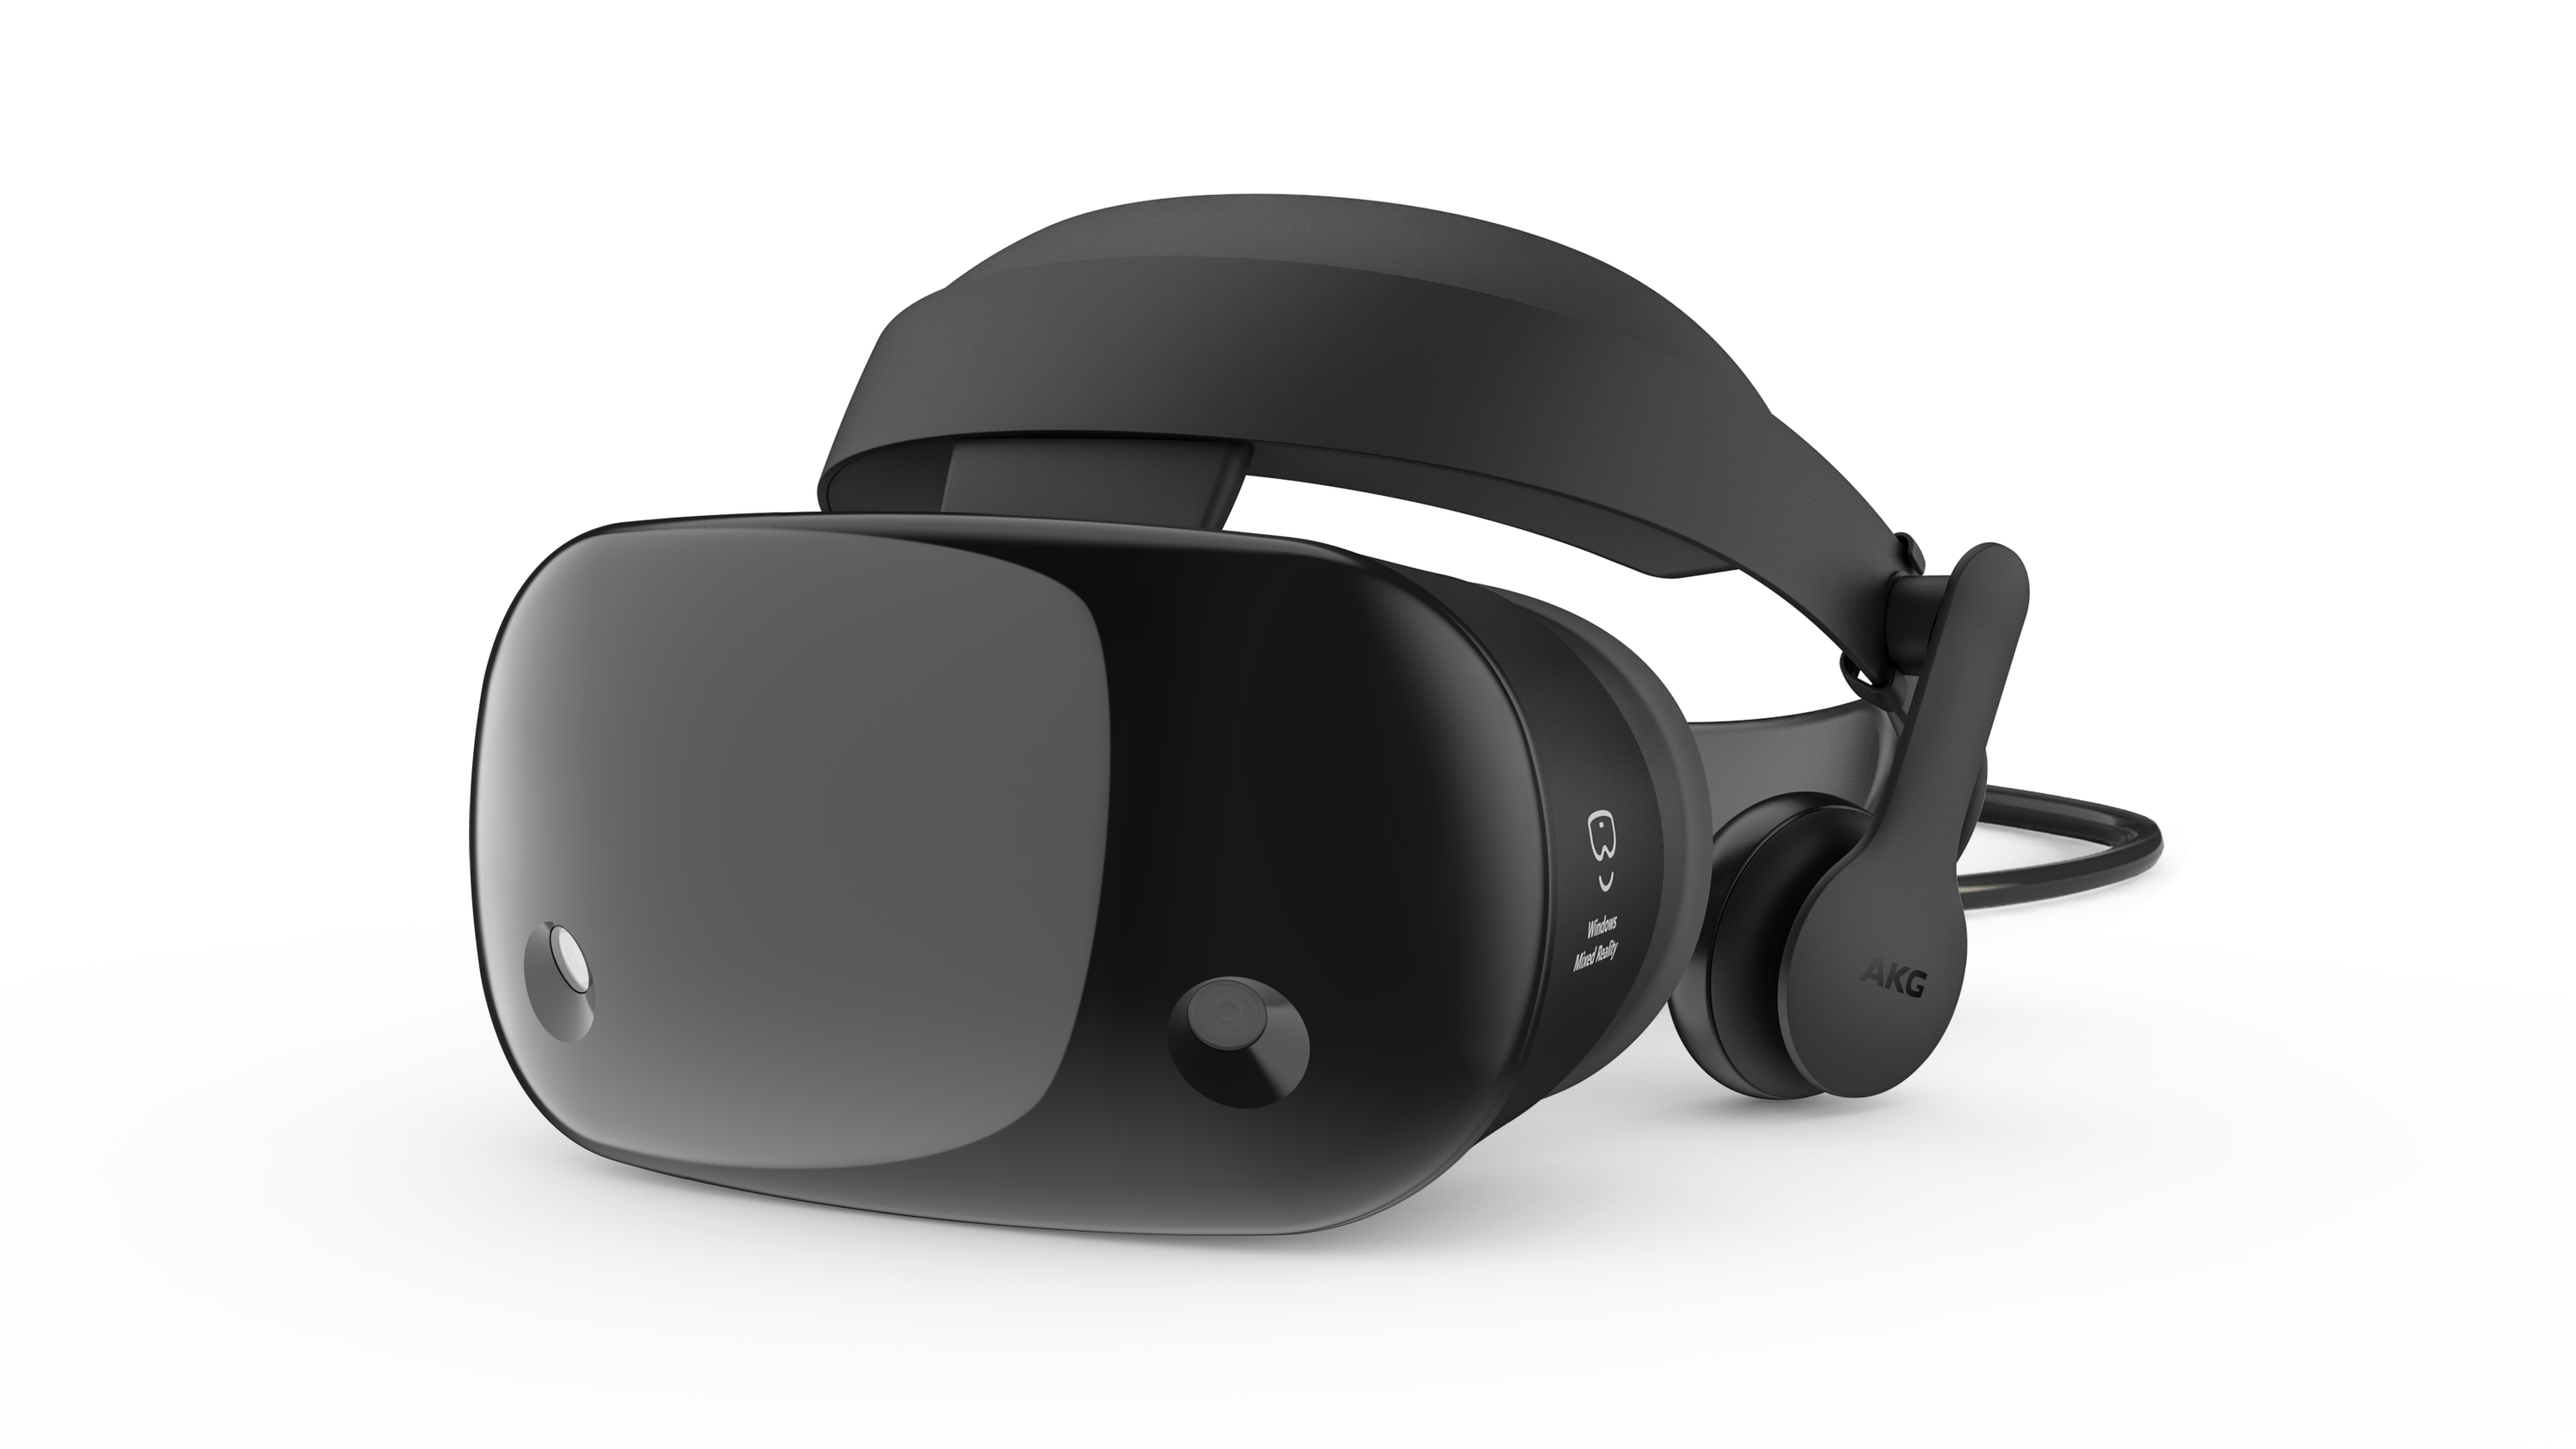 Samsung Debuts HMD Odyssey VR Headset with Microsoft Windows